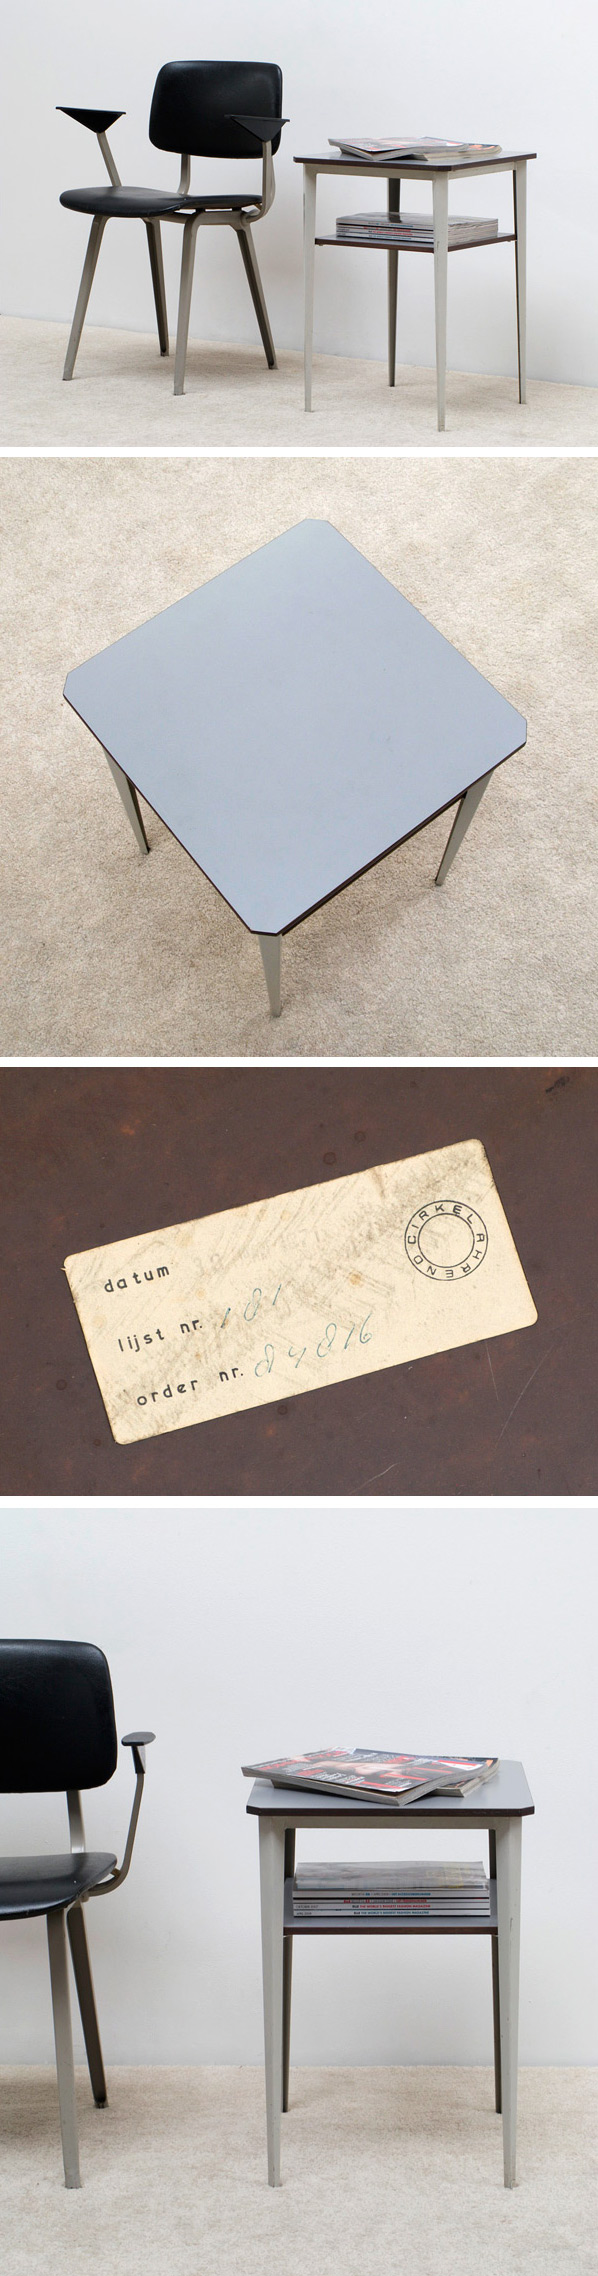 Wim Rietveld side table de cirkel ahrend Large